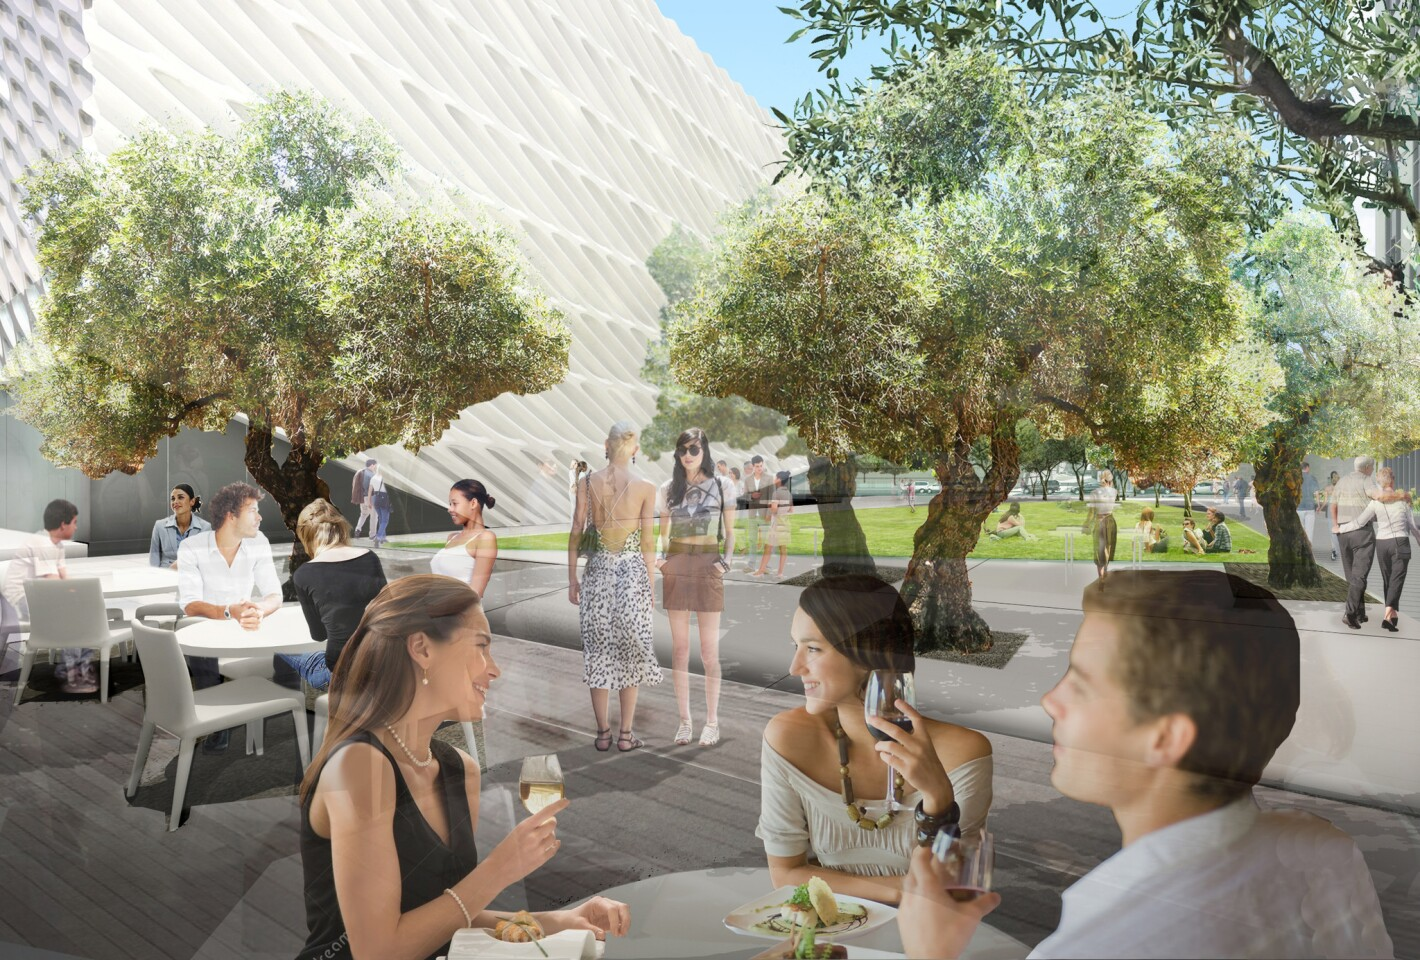 A new restaurant adjacent to The Broad will anchor the Hope Street end of the public plaza and feature outdoor dining that overlooks the open lawn and grove of 100-year-old Barouni olive trees.